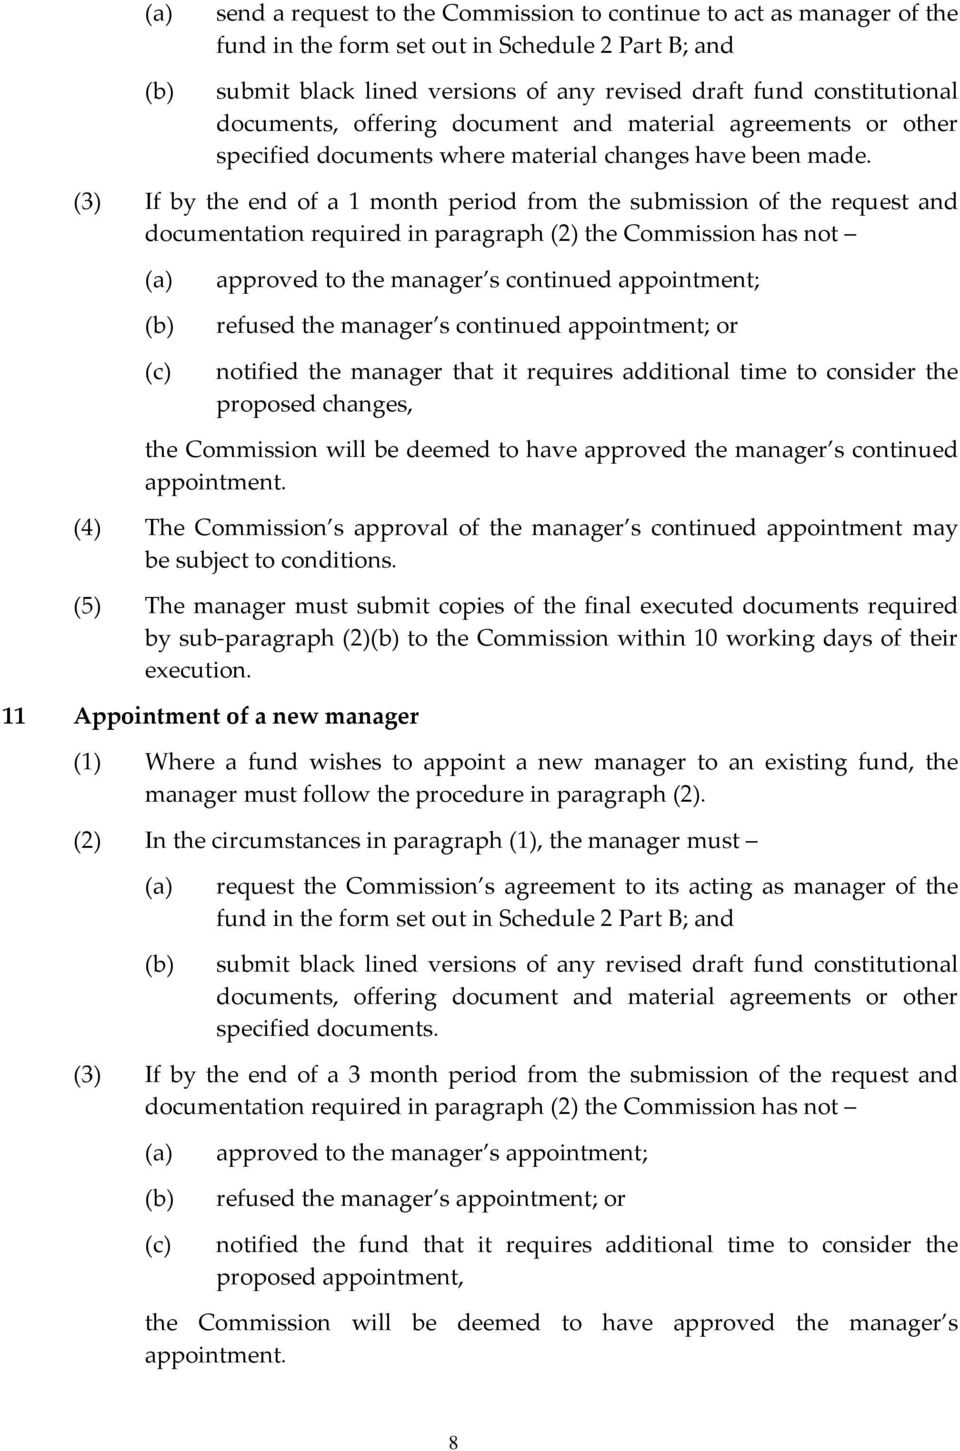 (3) If by the end of a 1 month period from the submission of the request and documentation required in paragraph (2) the Commission has not approved to the manager s continued appointment; refused